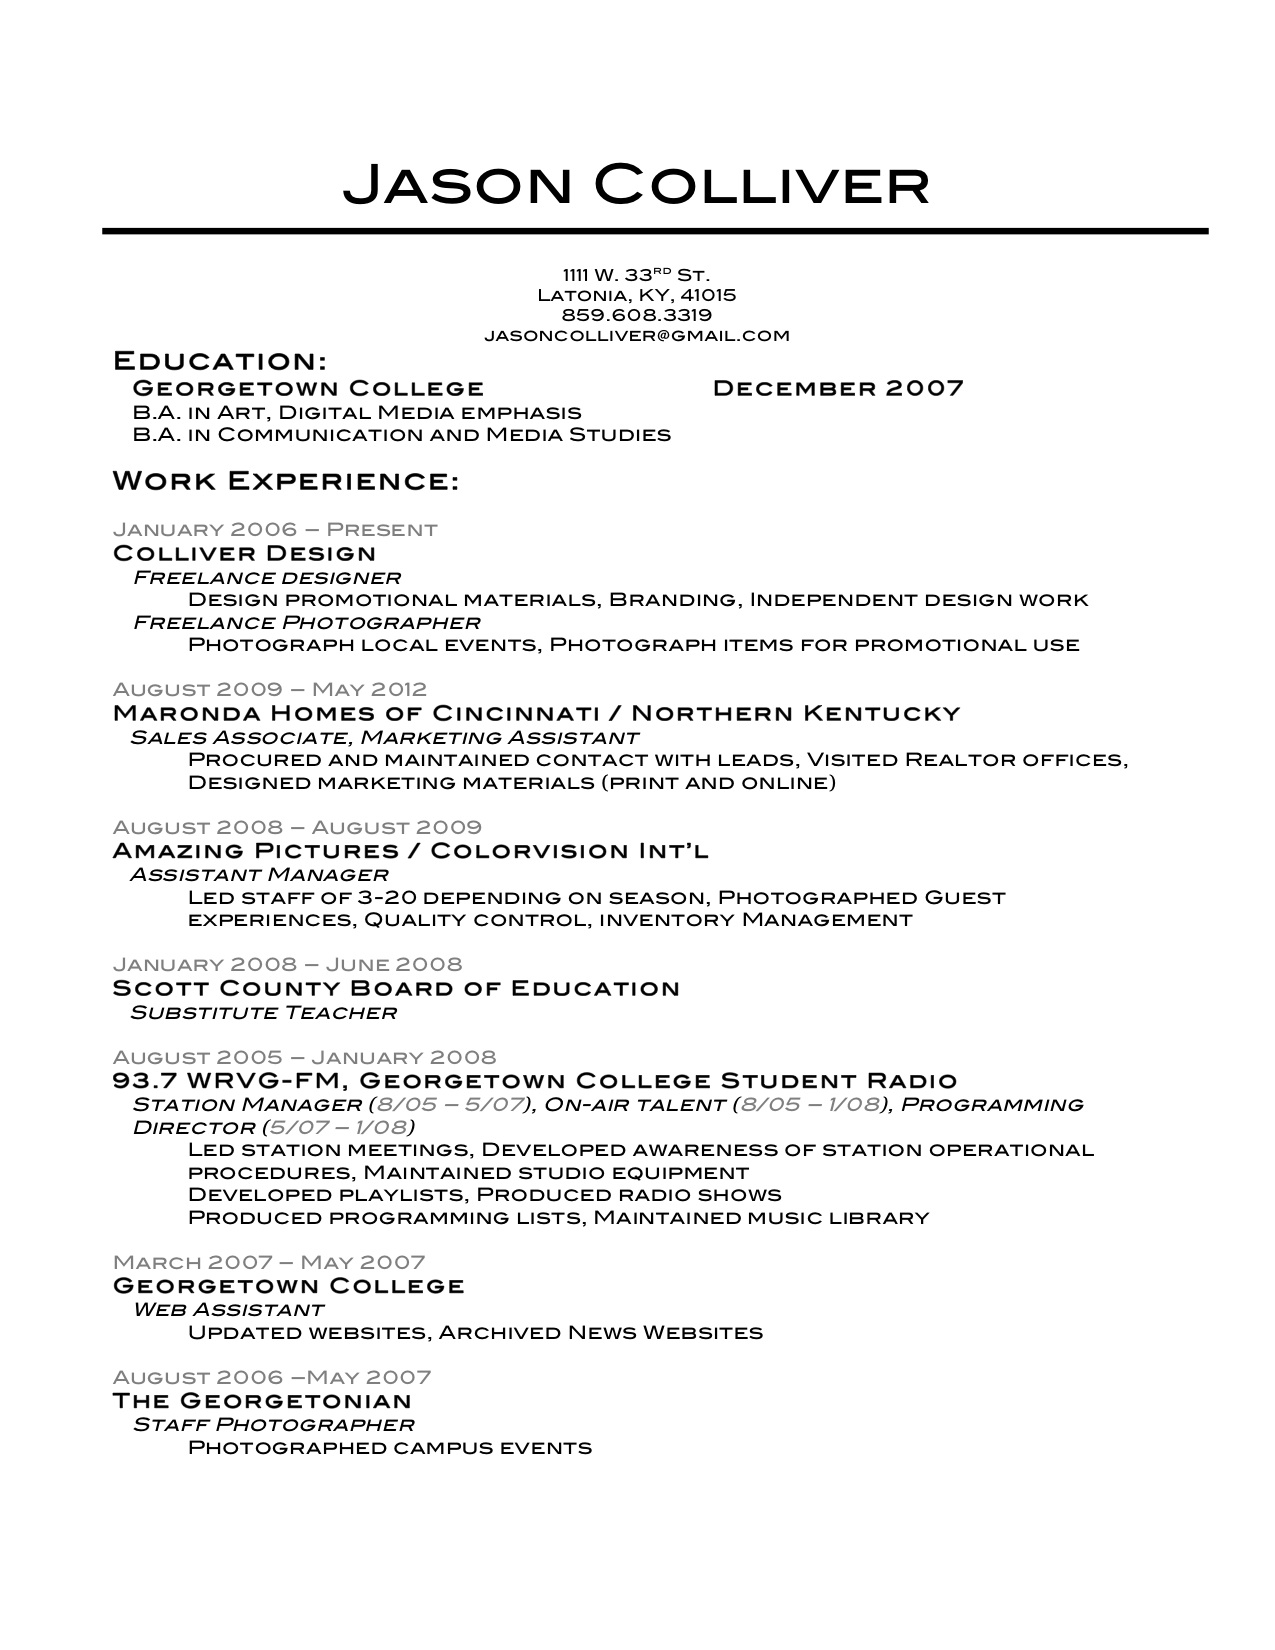 Coolest Resumes Jason Colliver Smile Youre At The Best Wordpress